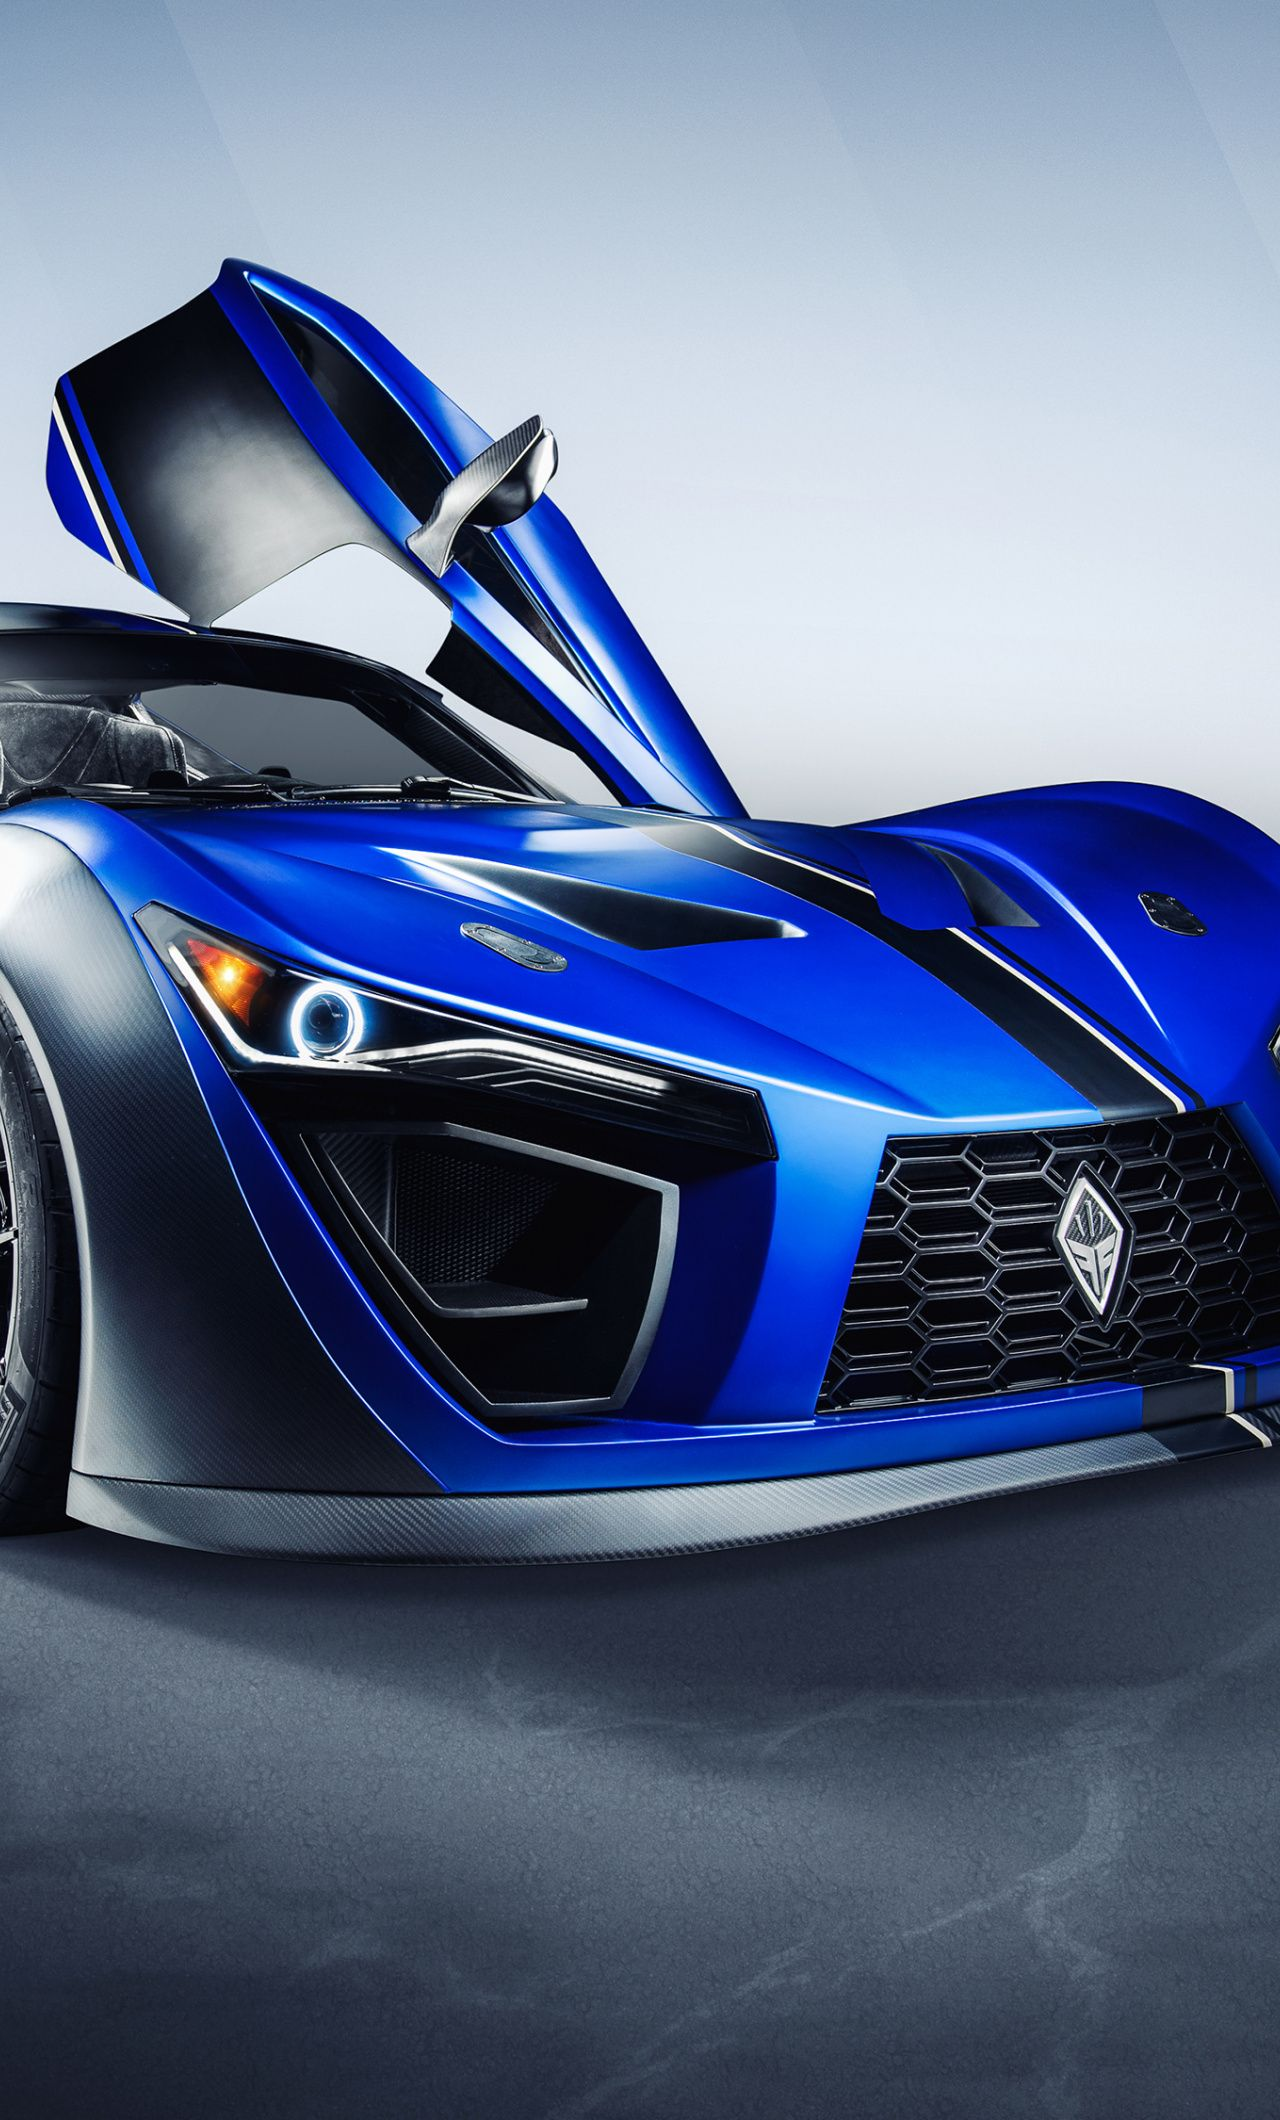 Fortunately, apple has made it fairly easy to download apps, both paid and free, from its app store, so you can check the weather, play a. Download Sportcar Felino Cb7r 2020 Car Wallpaper For Screen 1280x2120 Iphone 6 Plus Iphone 6 Plus Iphone 6 Samsung Galaxy S4 Mini